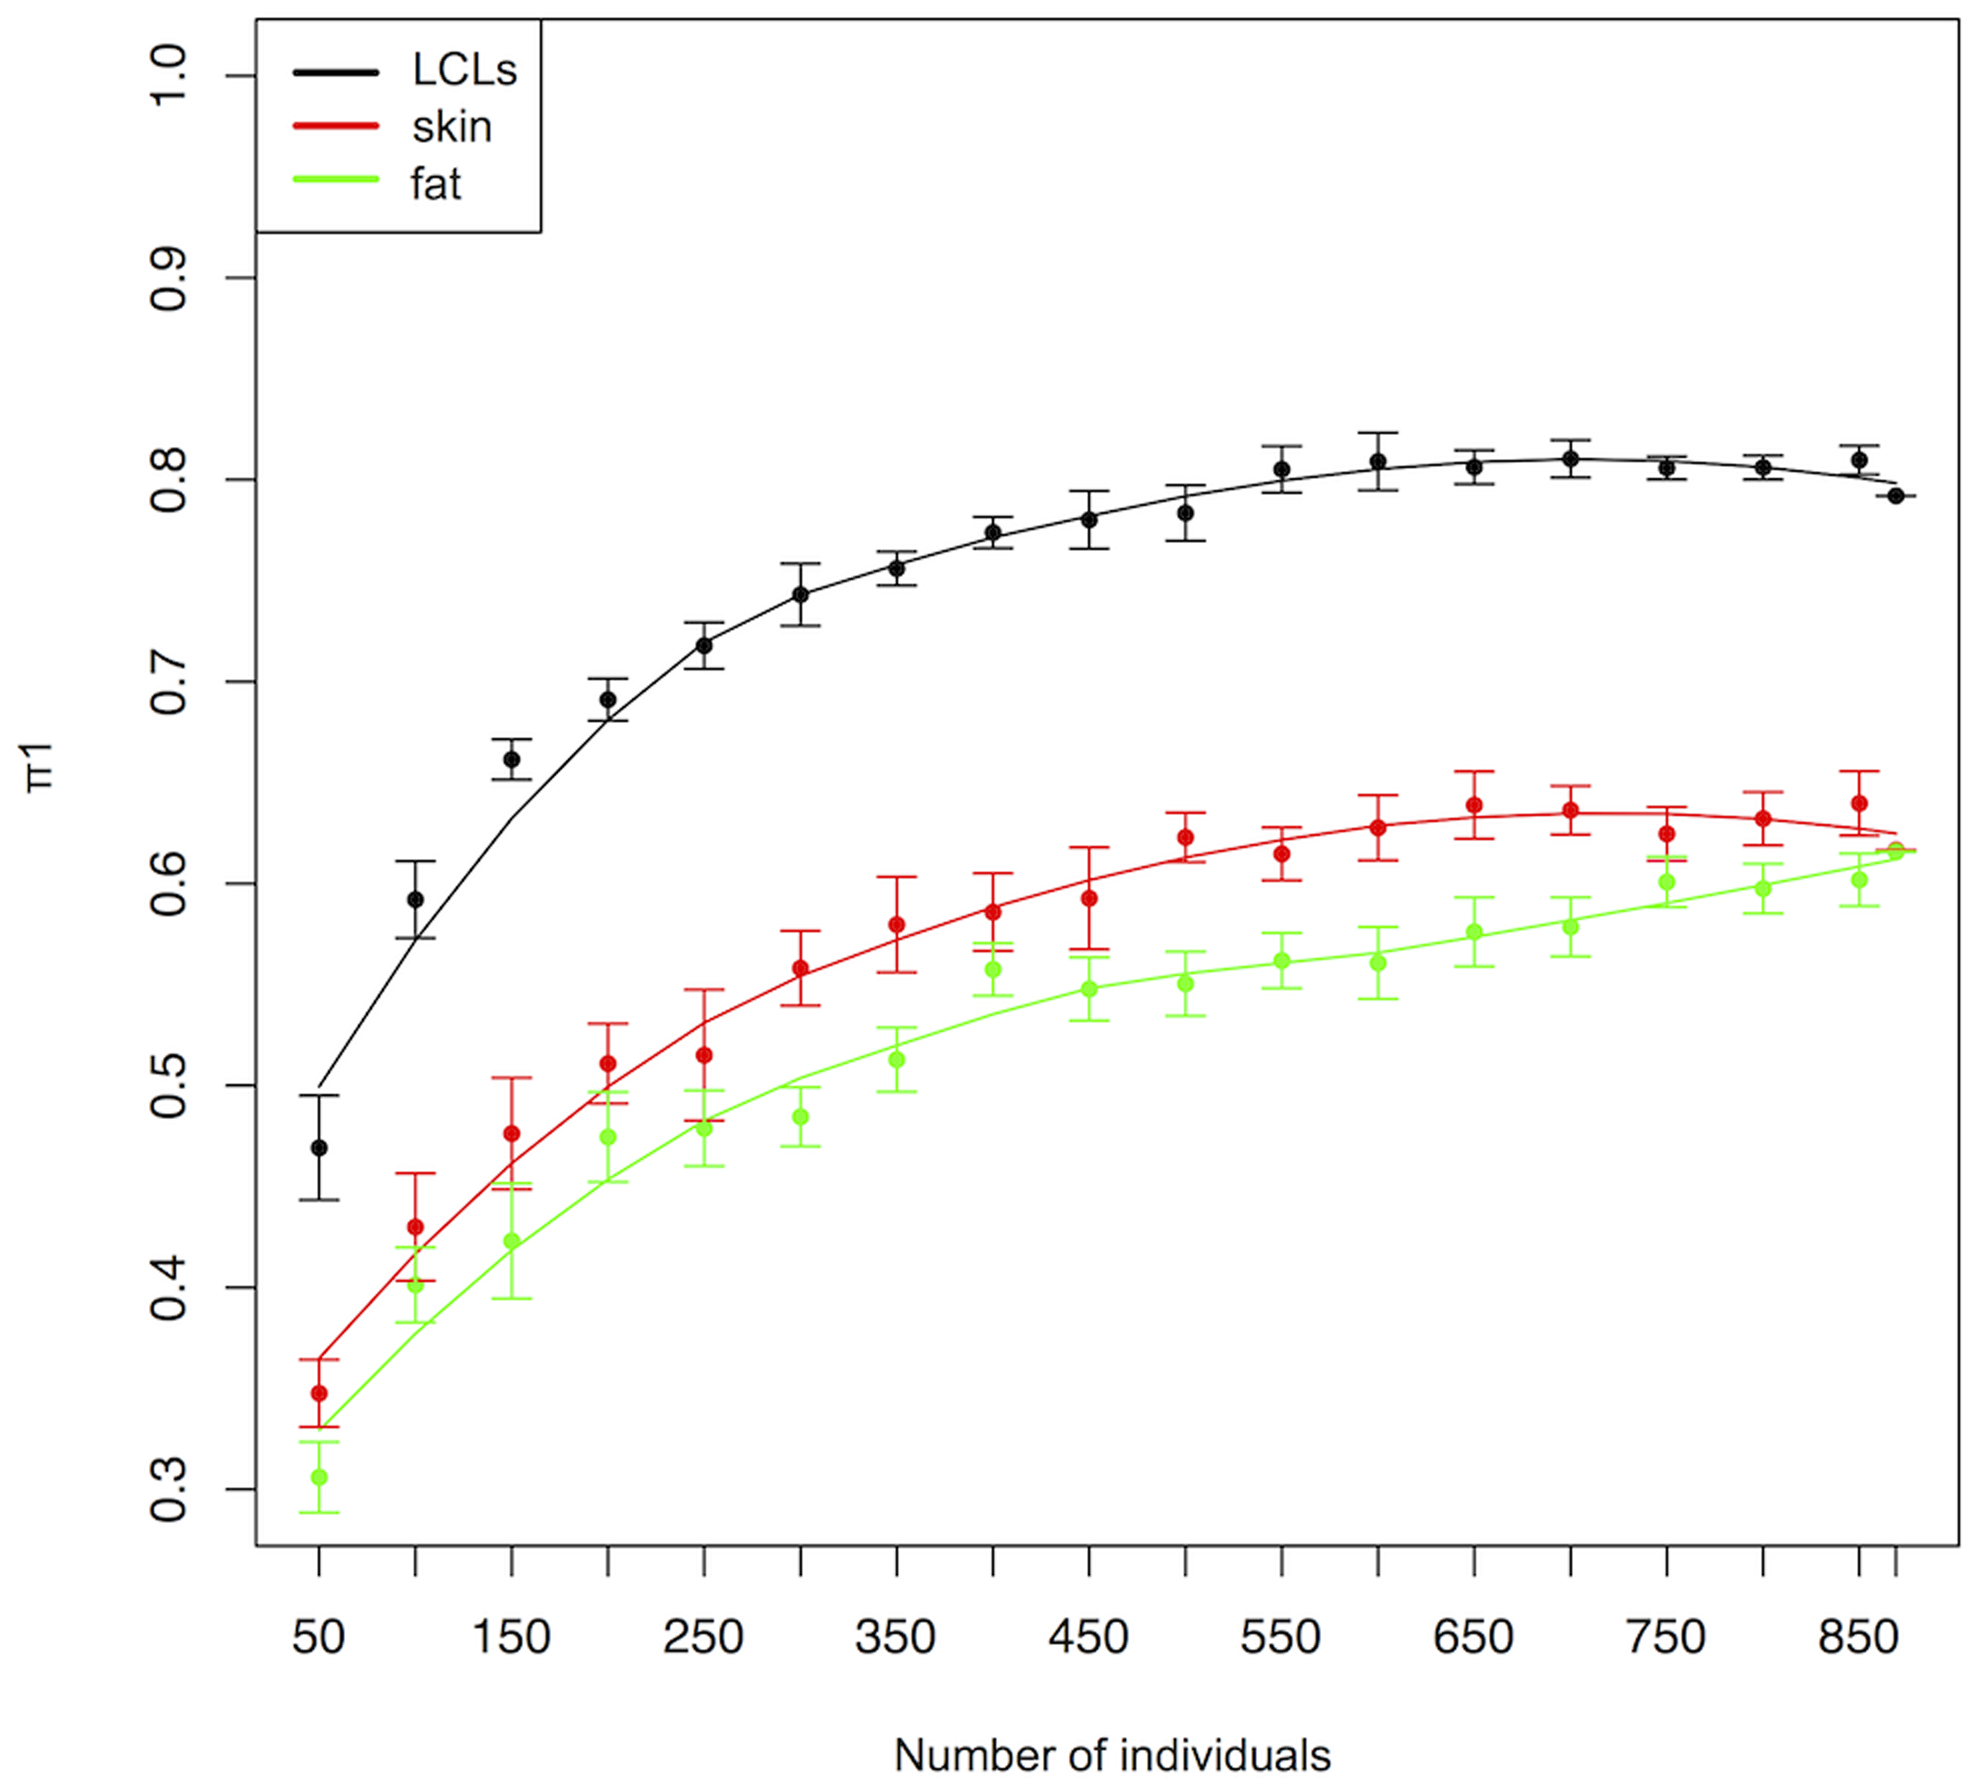 Tissue sharing (π1) of cis-eQTLs between ALSPAC LCLs and cis-eQTLs detected by the MUTHER cohort in LCLs (black), skin (red) and adipose tissues (green) tissues in function of the ALSPAC sample size.